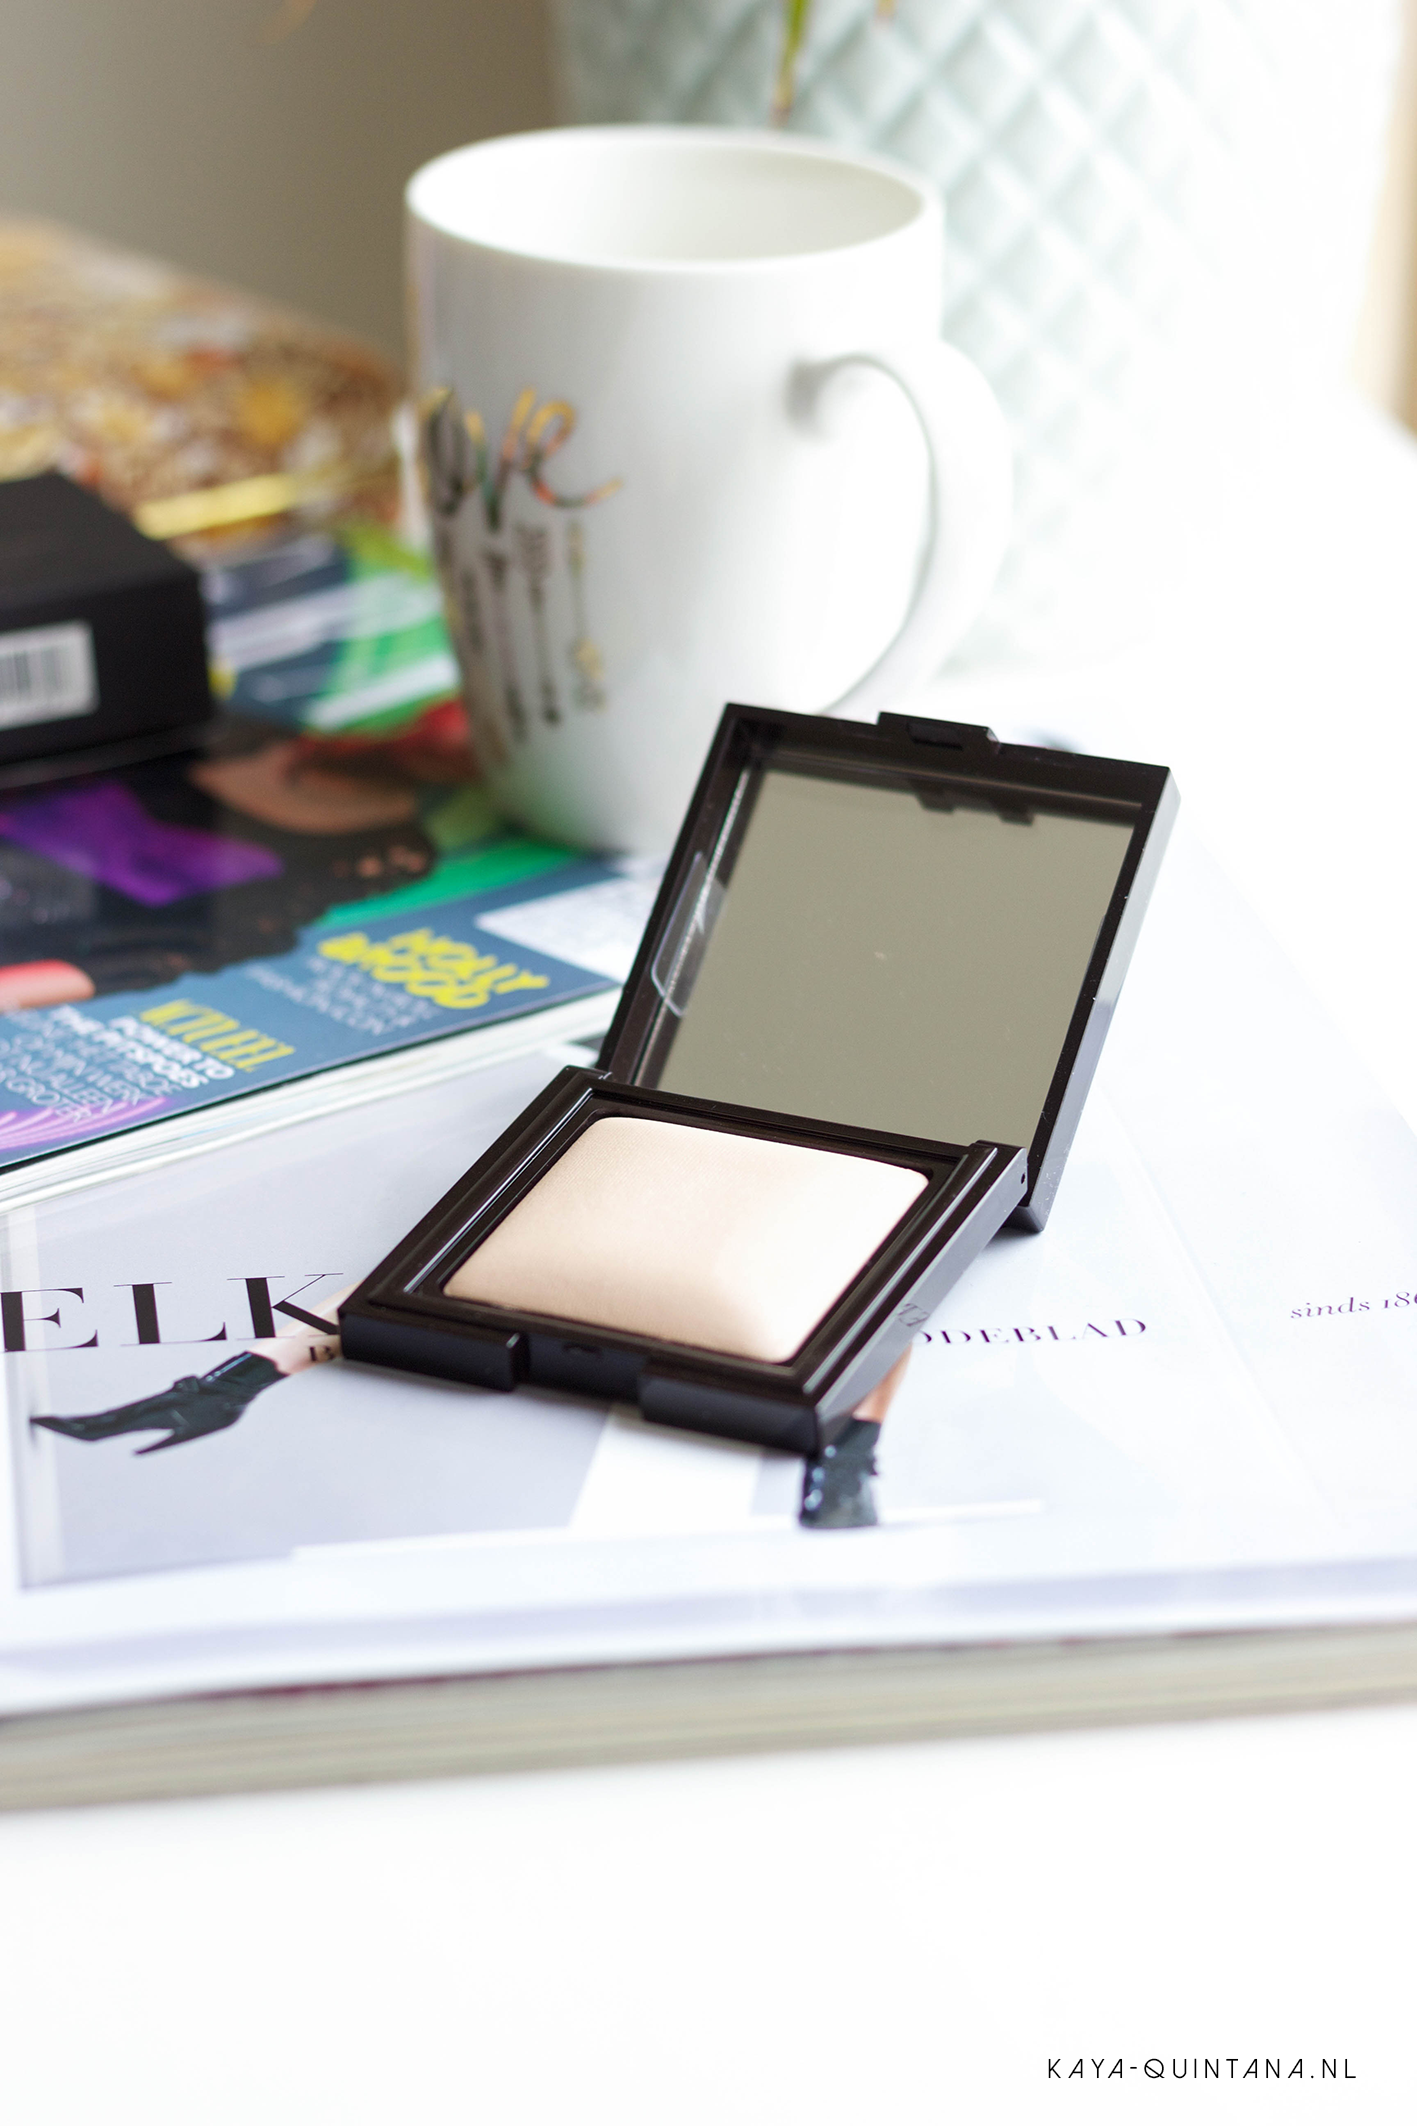 Sheer candleglow sheer perfecting powder